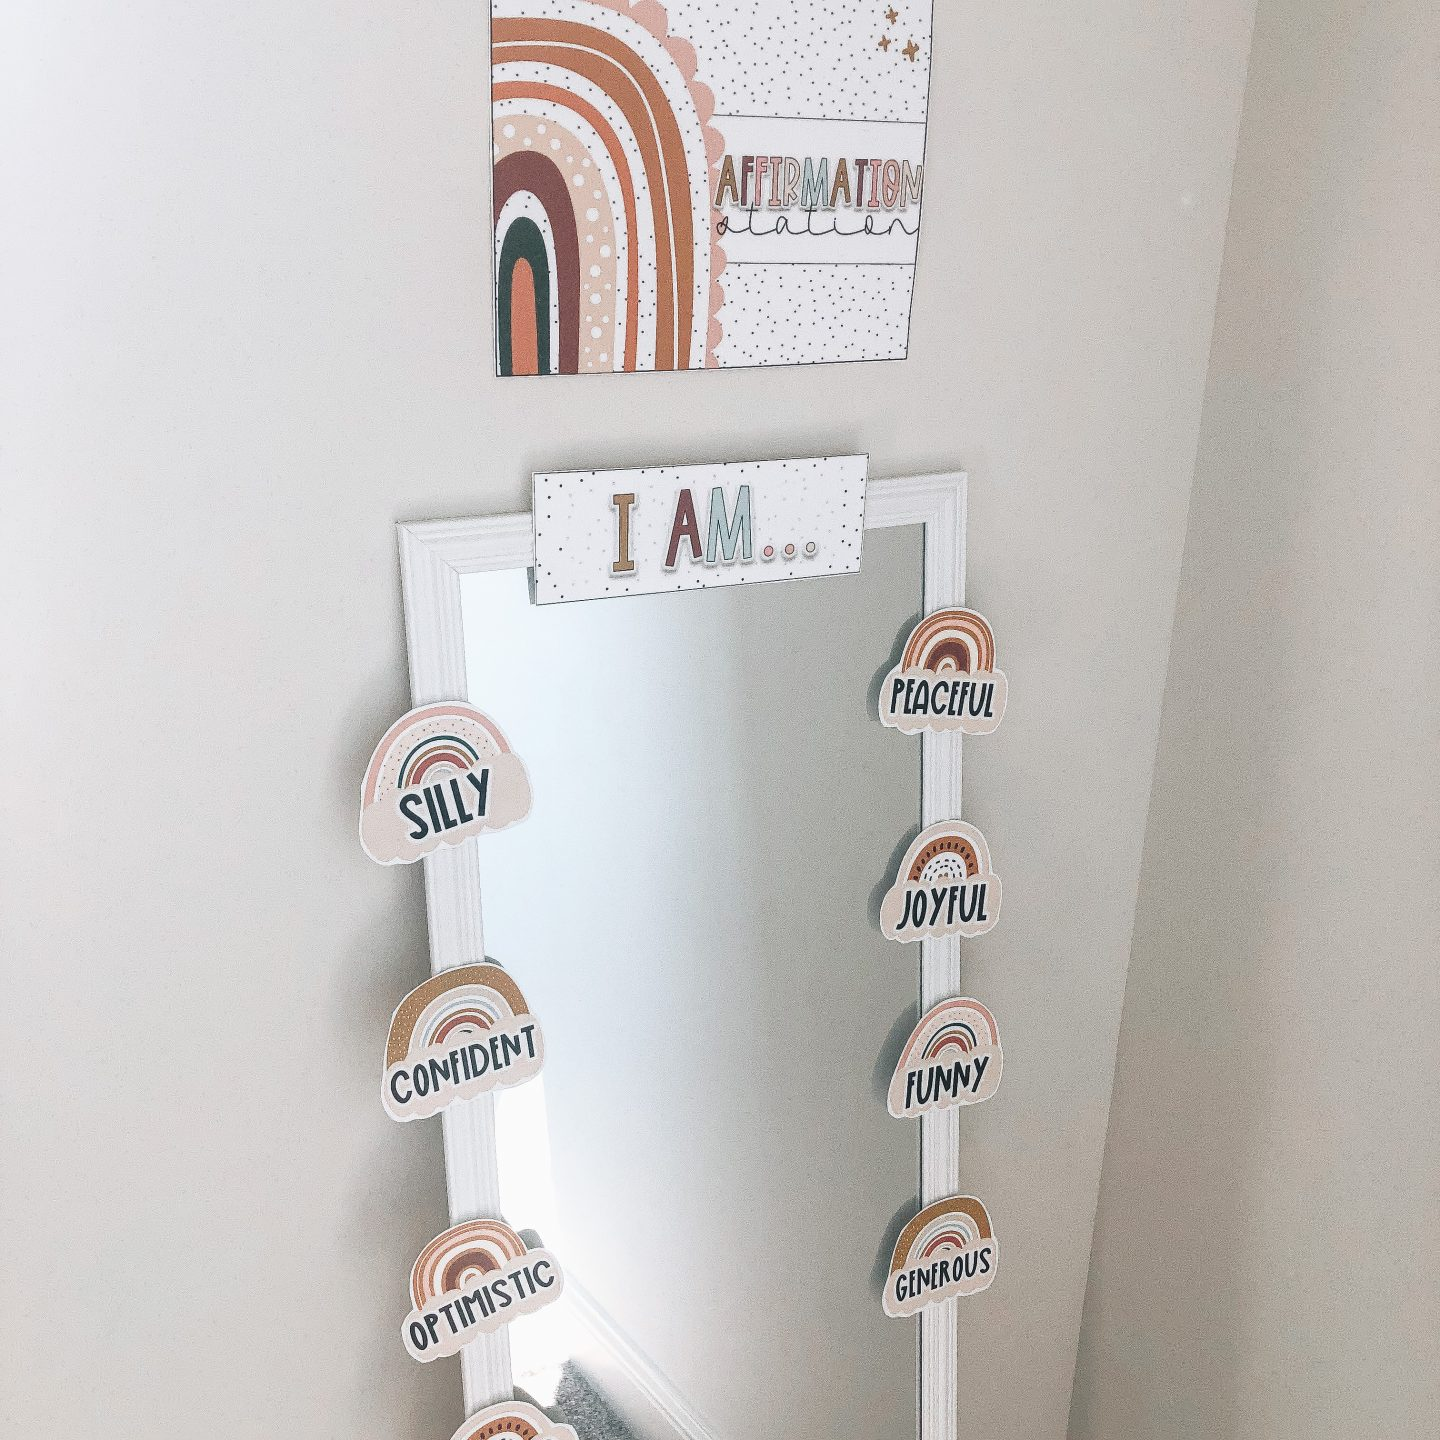 An affirmation station, complete with headers and affirmation statements on a mirror.